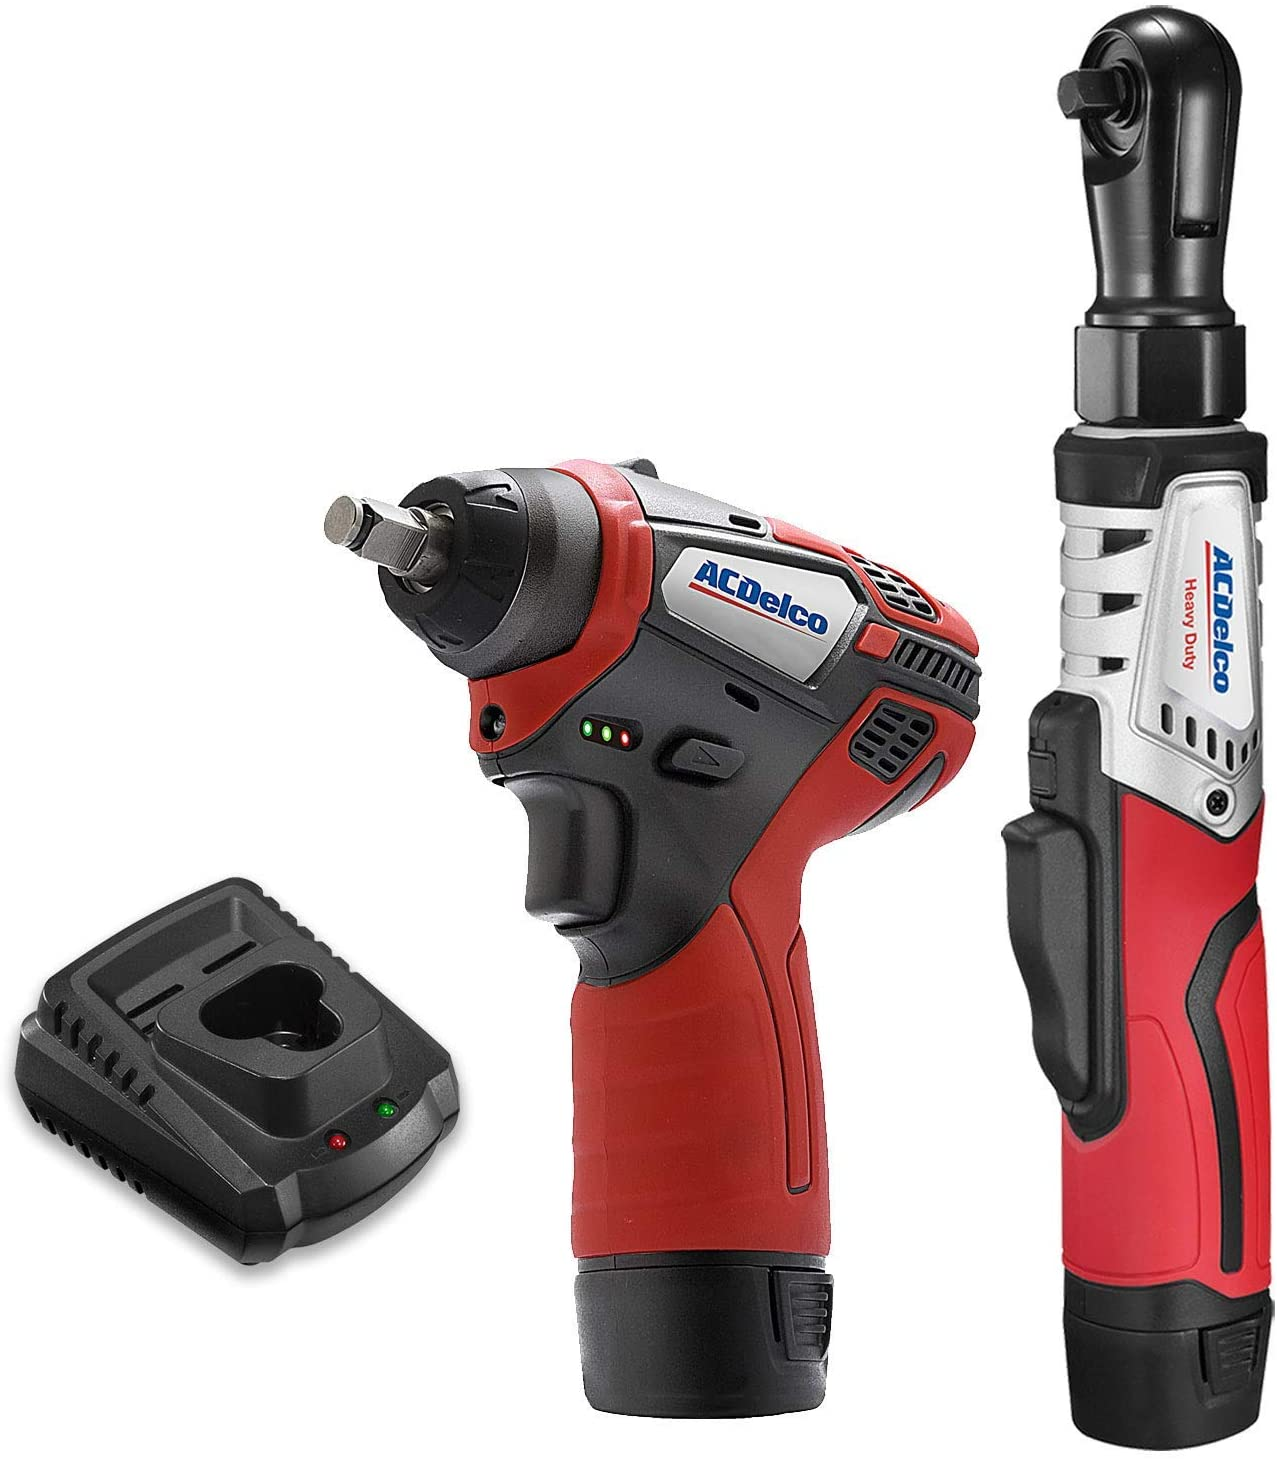 "ACDelco ARW12103-K1 G12 Series 12V Cordless Li-ion 3/8"" Brushless Rachet Wrench & Impact Wrench Combo Tool Kit with 2 Batteries"